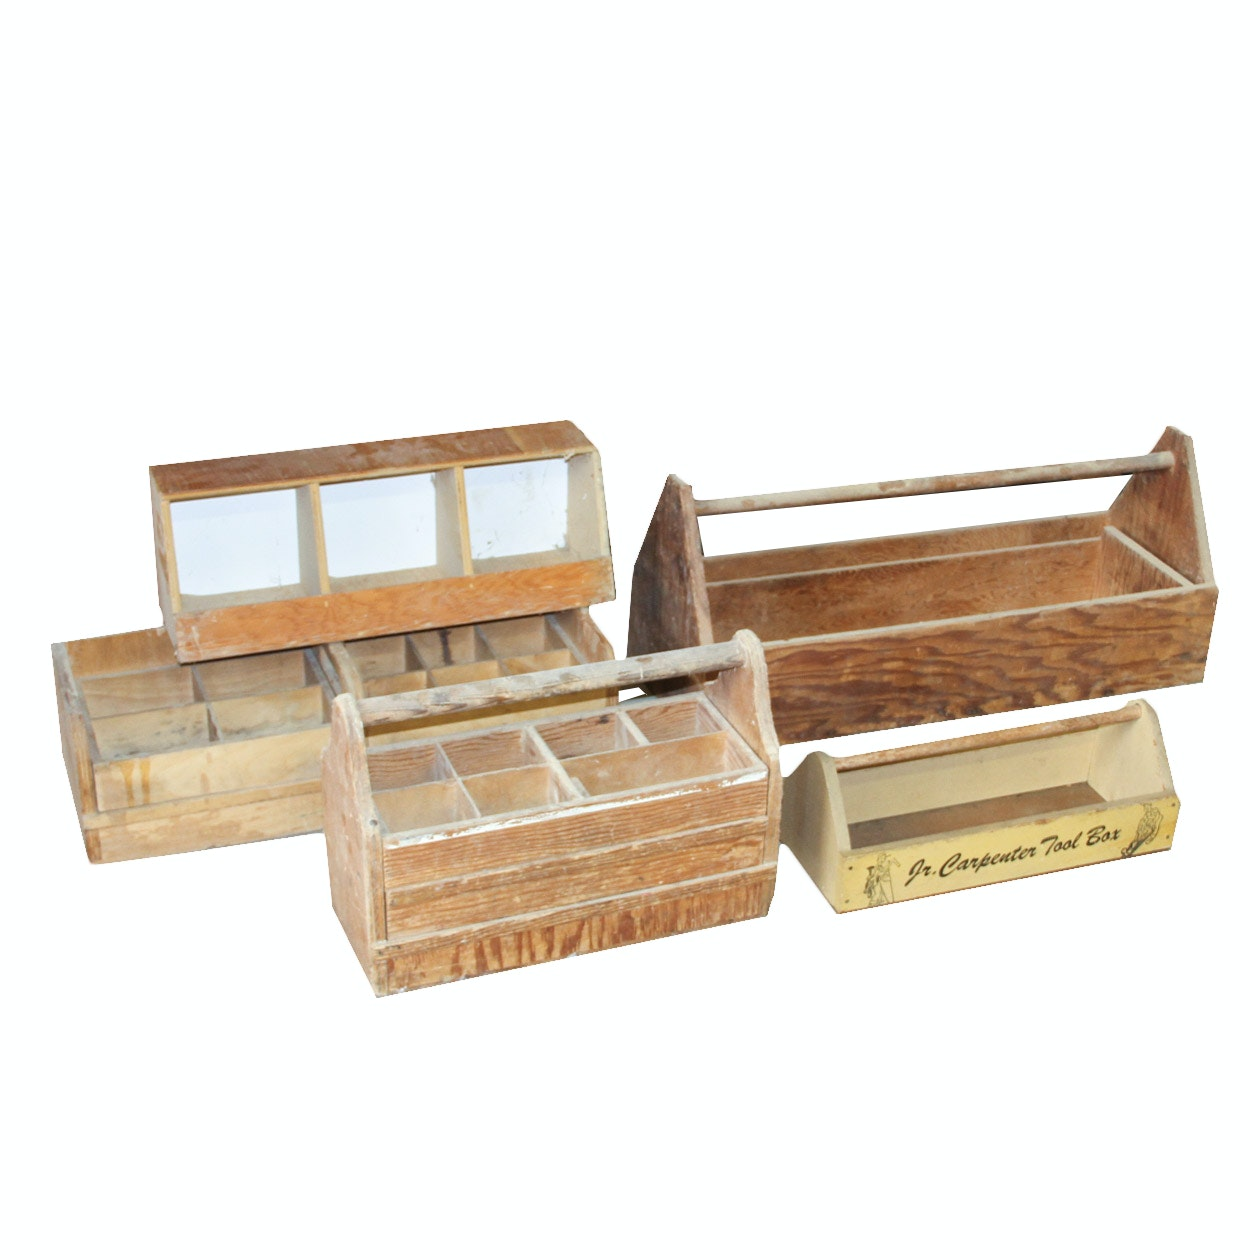 Collection of Vintage Wooden Tool Boxes